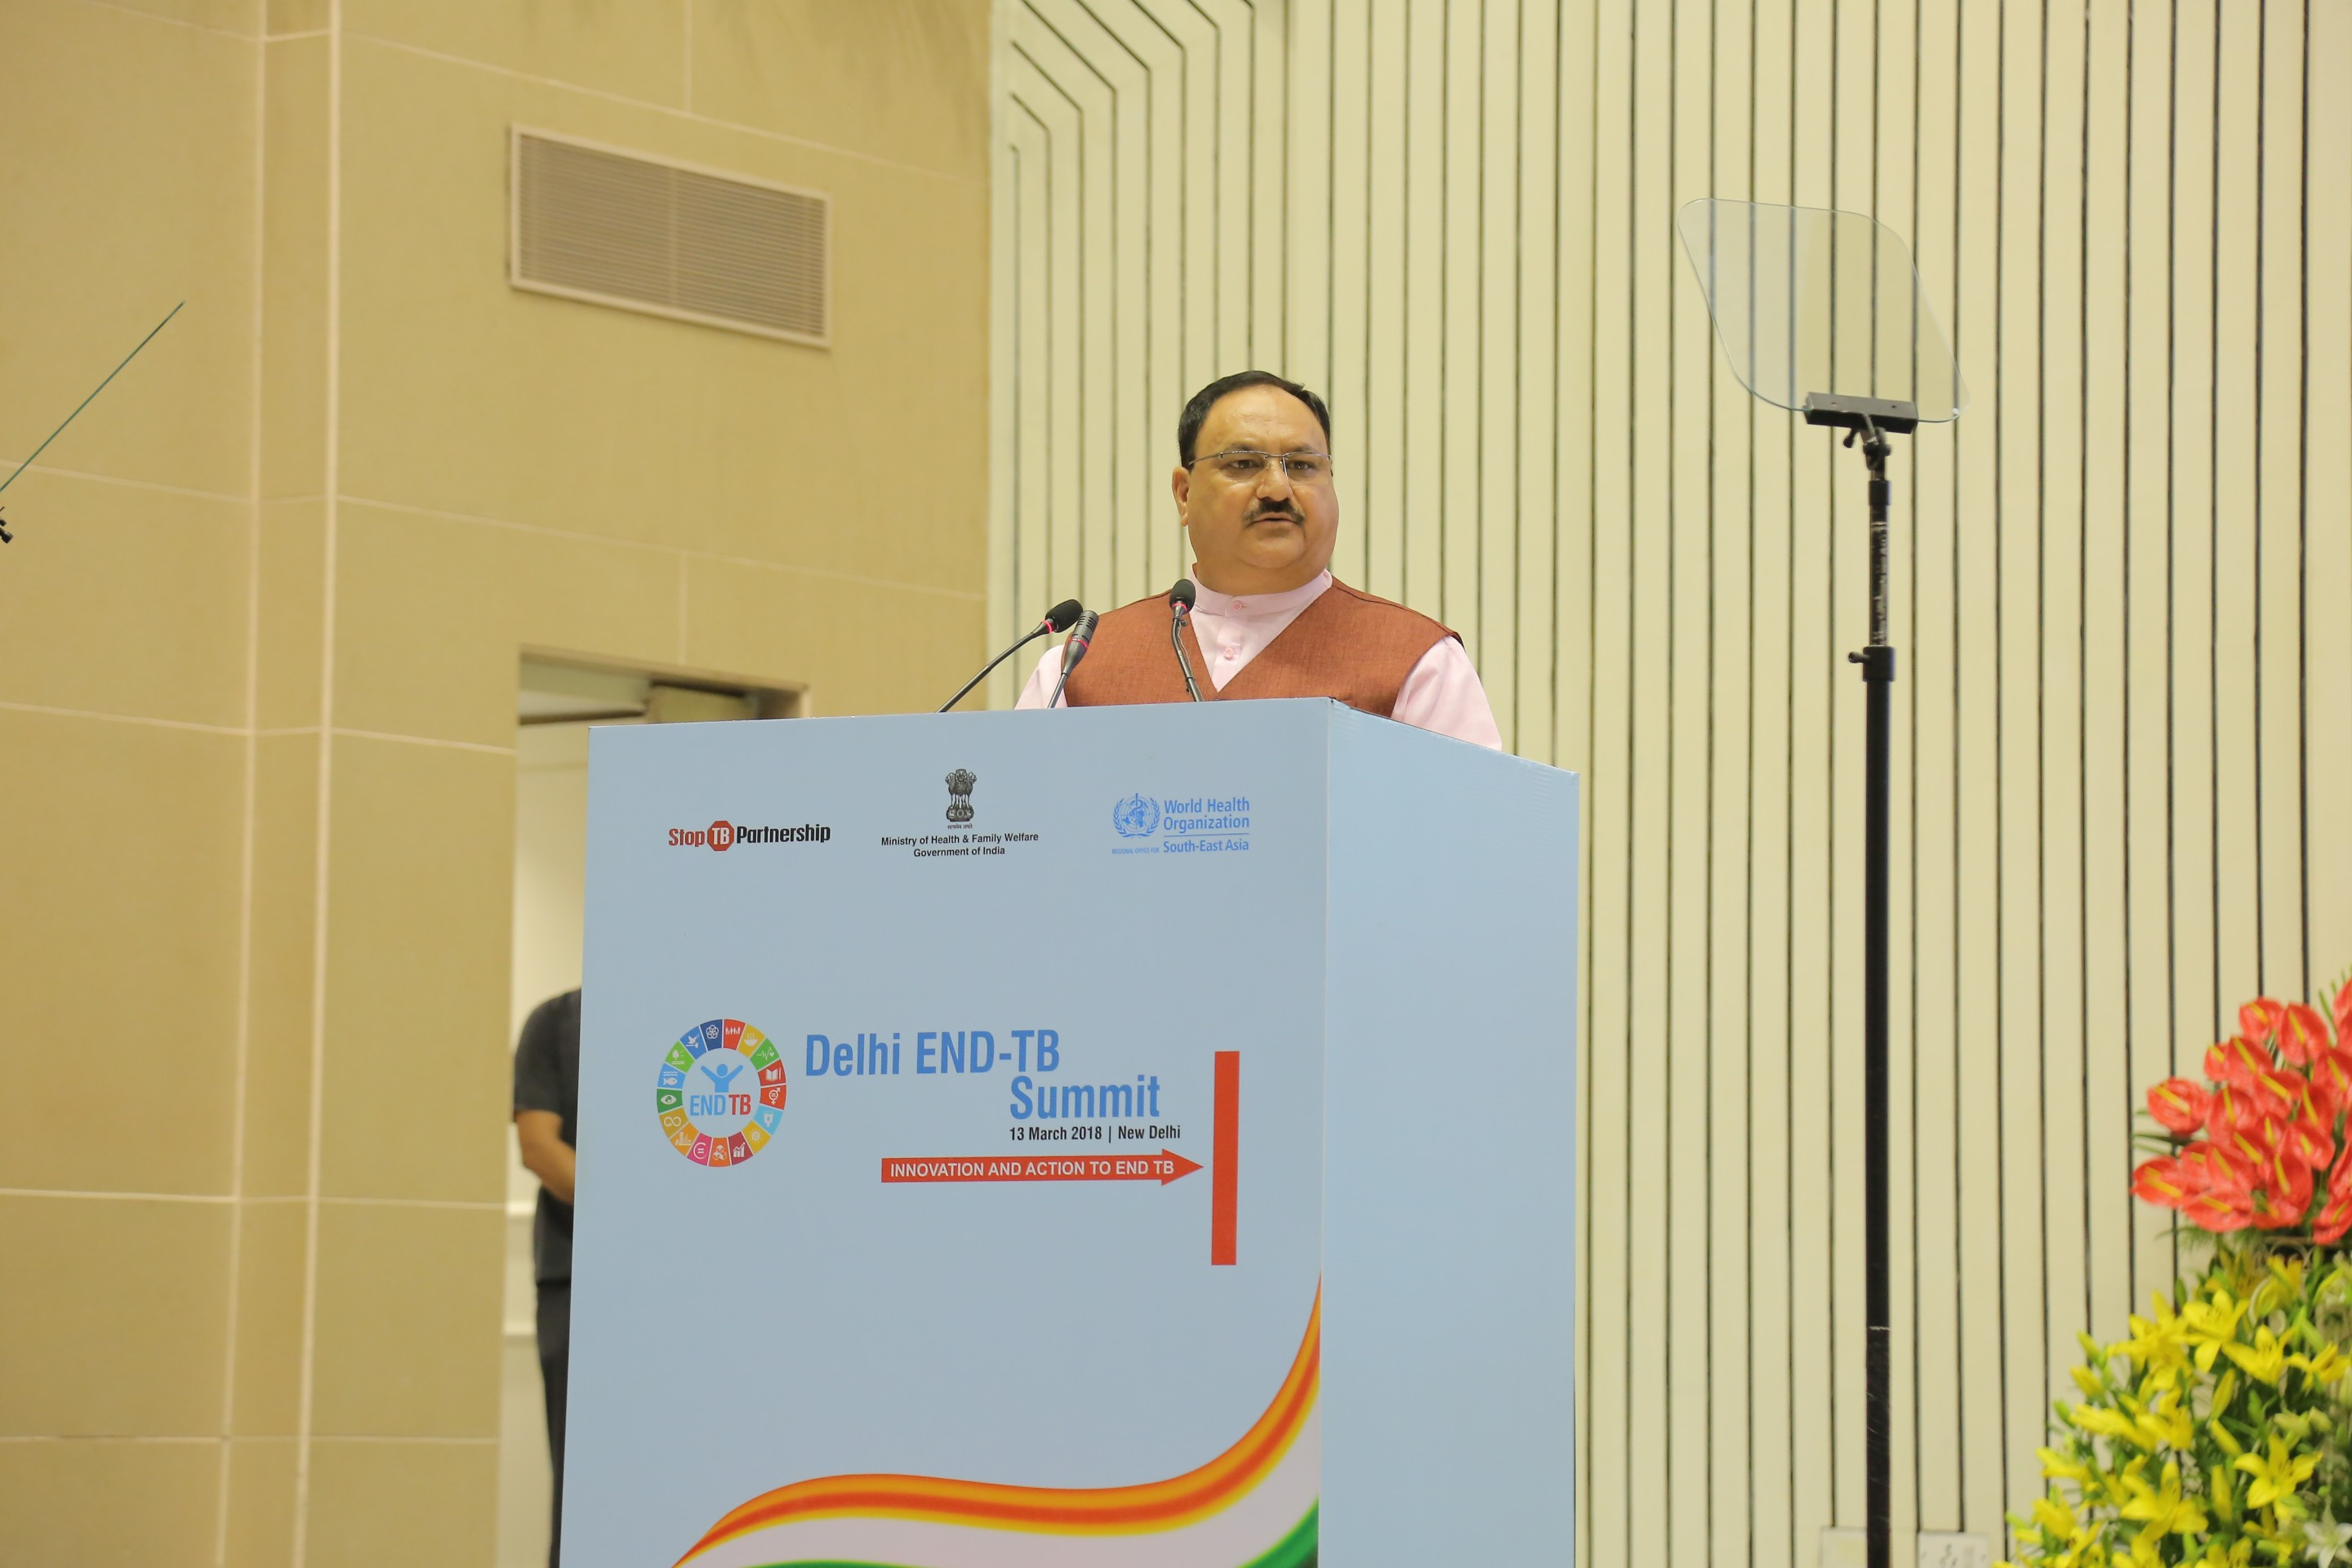 Hon'ble Minister MoHFW addresses on 13th March 2018 at Vigyan Bhawan